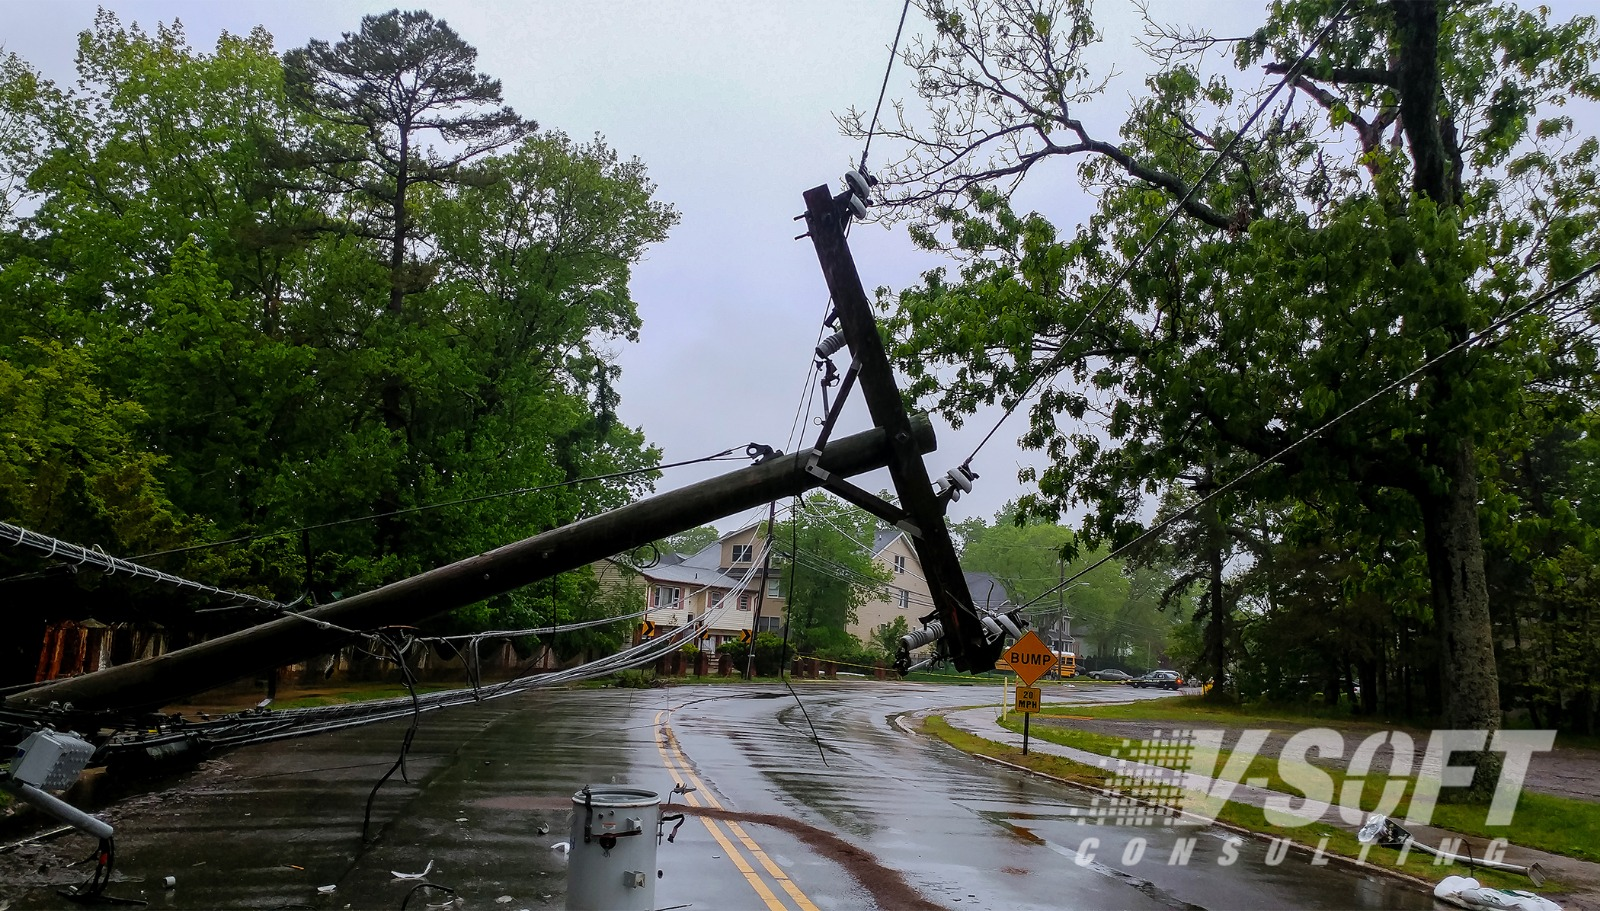 Telephone Pole knocked down during natural disaster. Chatbot Response.